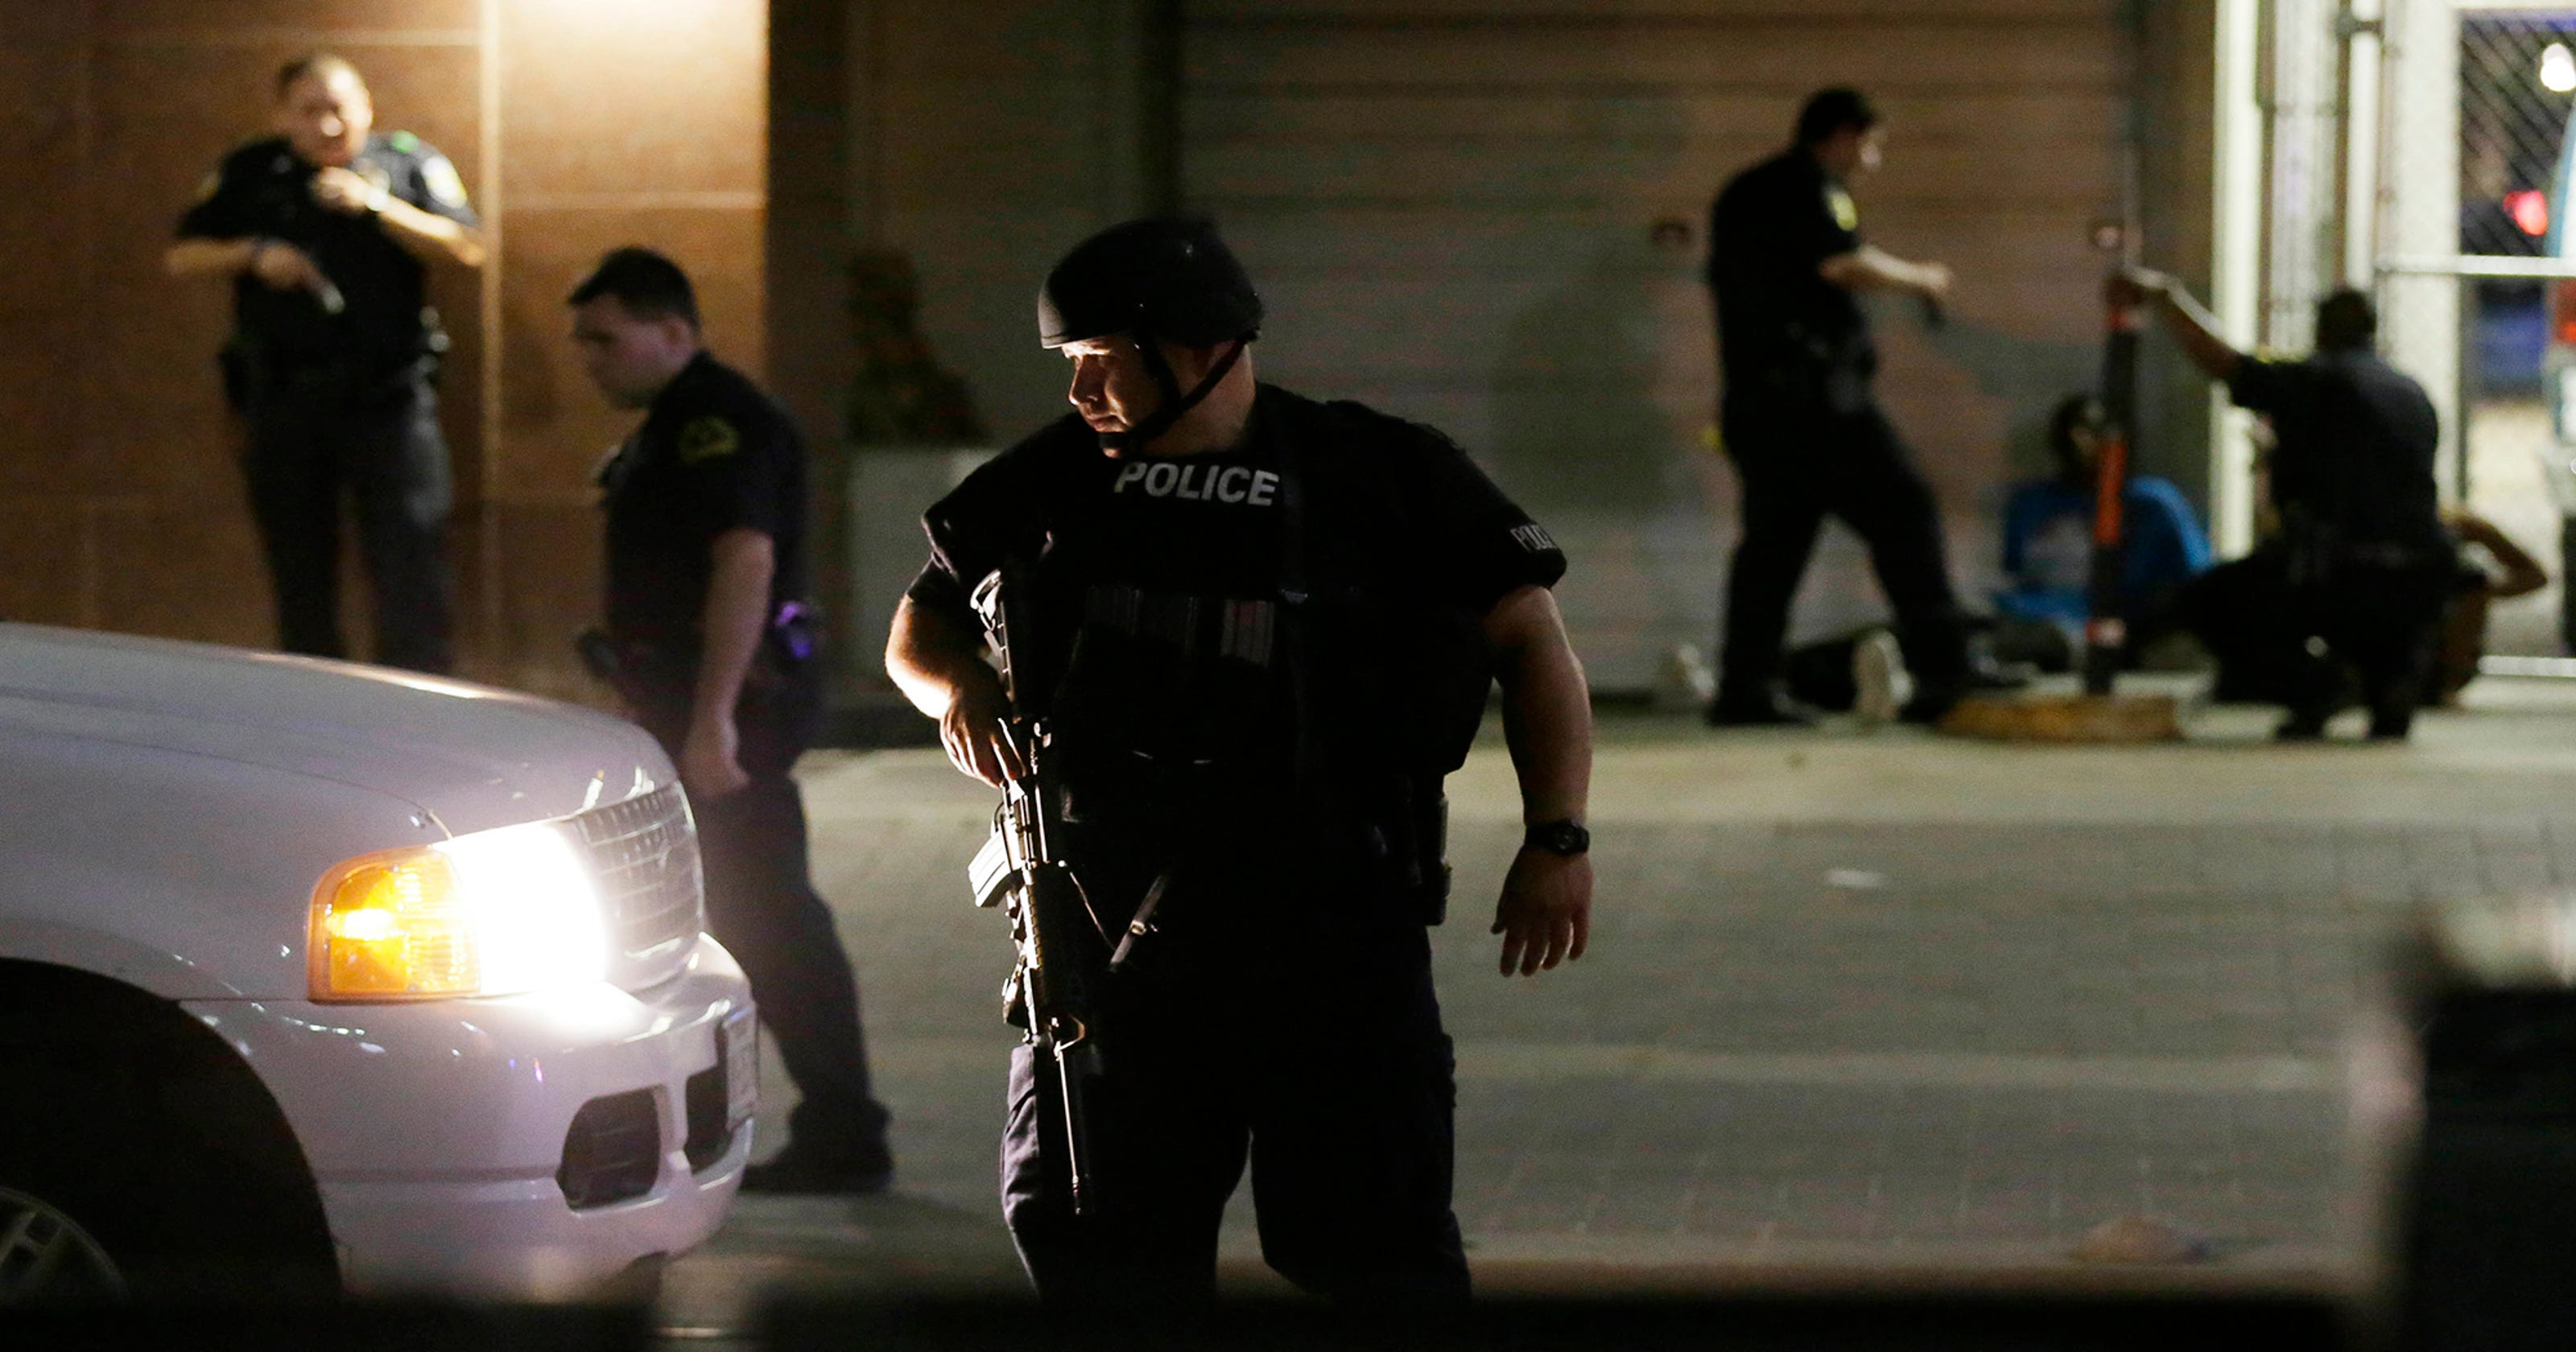 This is how the Dallas sniper shootings unfolded